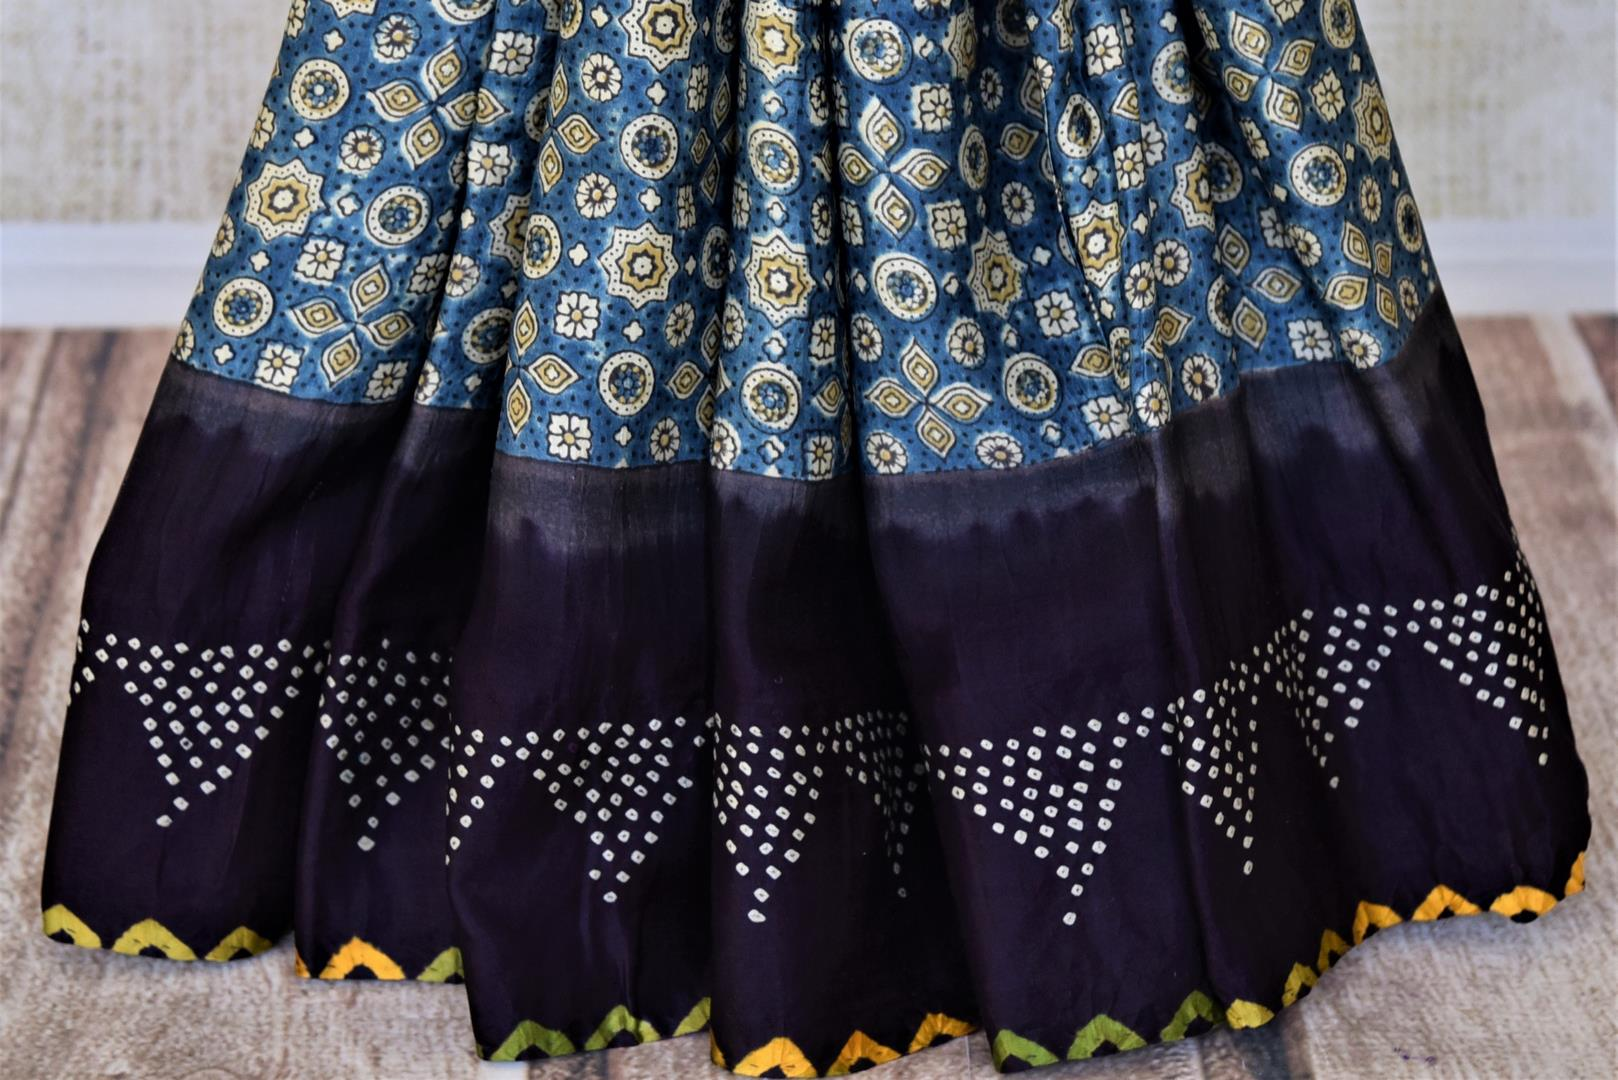 Buy blue Ajrakh gajji silk sari online in USA with bandhej print border. Choose tasteful Indian sarees for special occasions from Pure Elegance. Our exclusive Indian fashion store has a myriad of stunning pure silk sarees, printed sarees, handwoven saris for Indian women in USA.-pleats